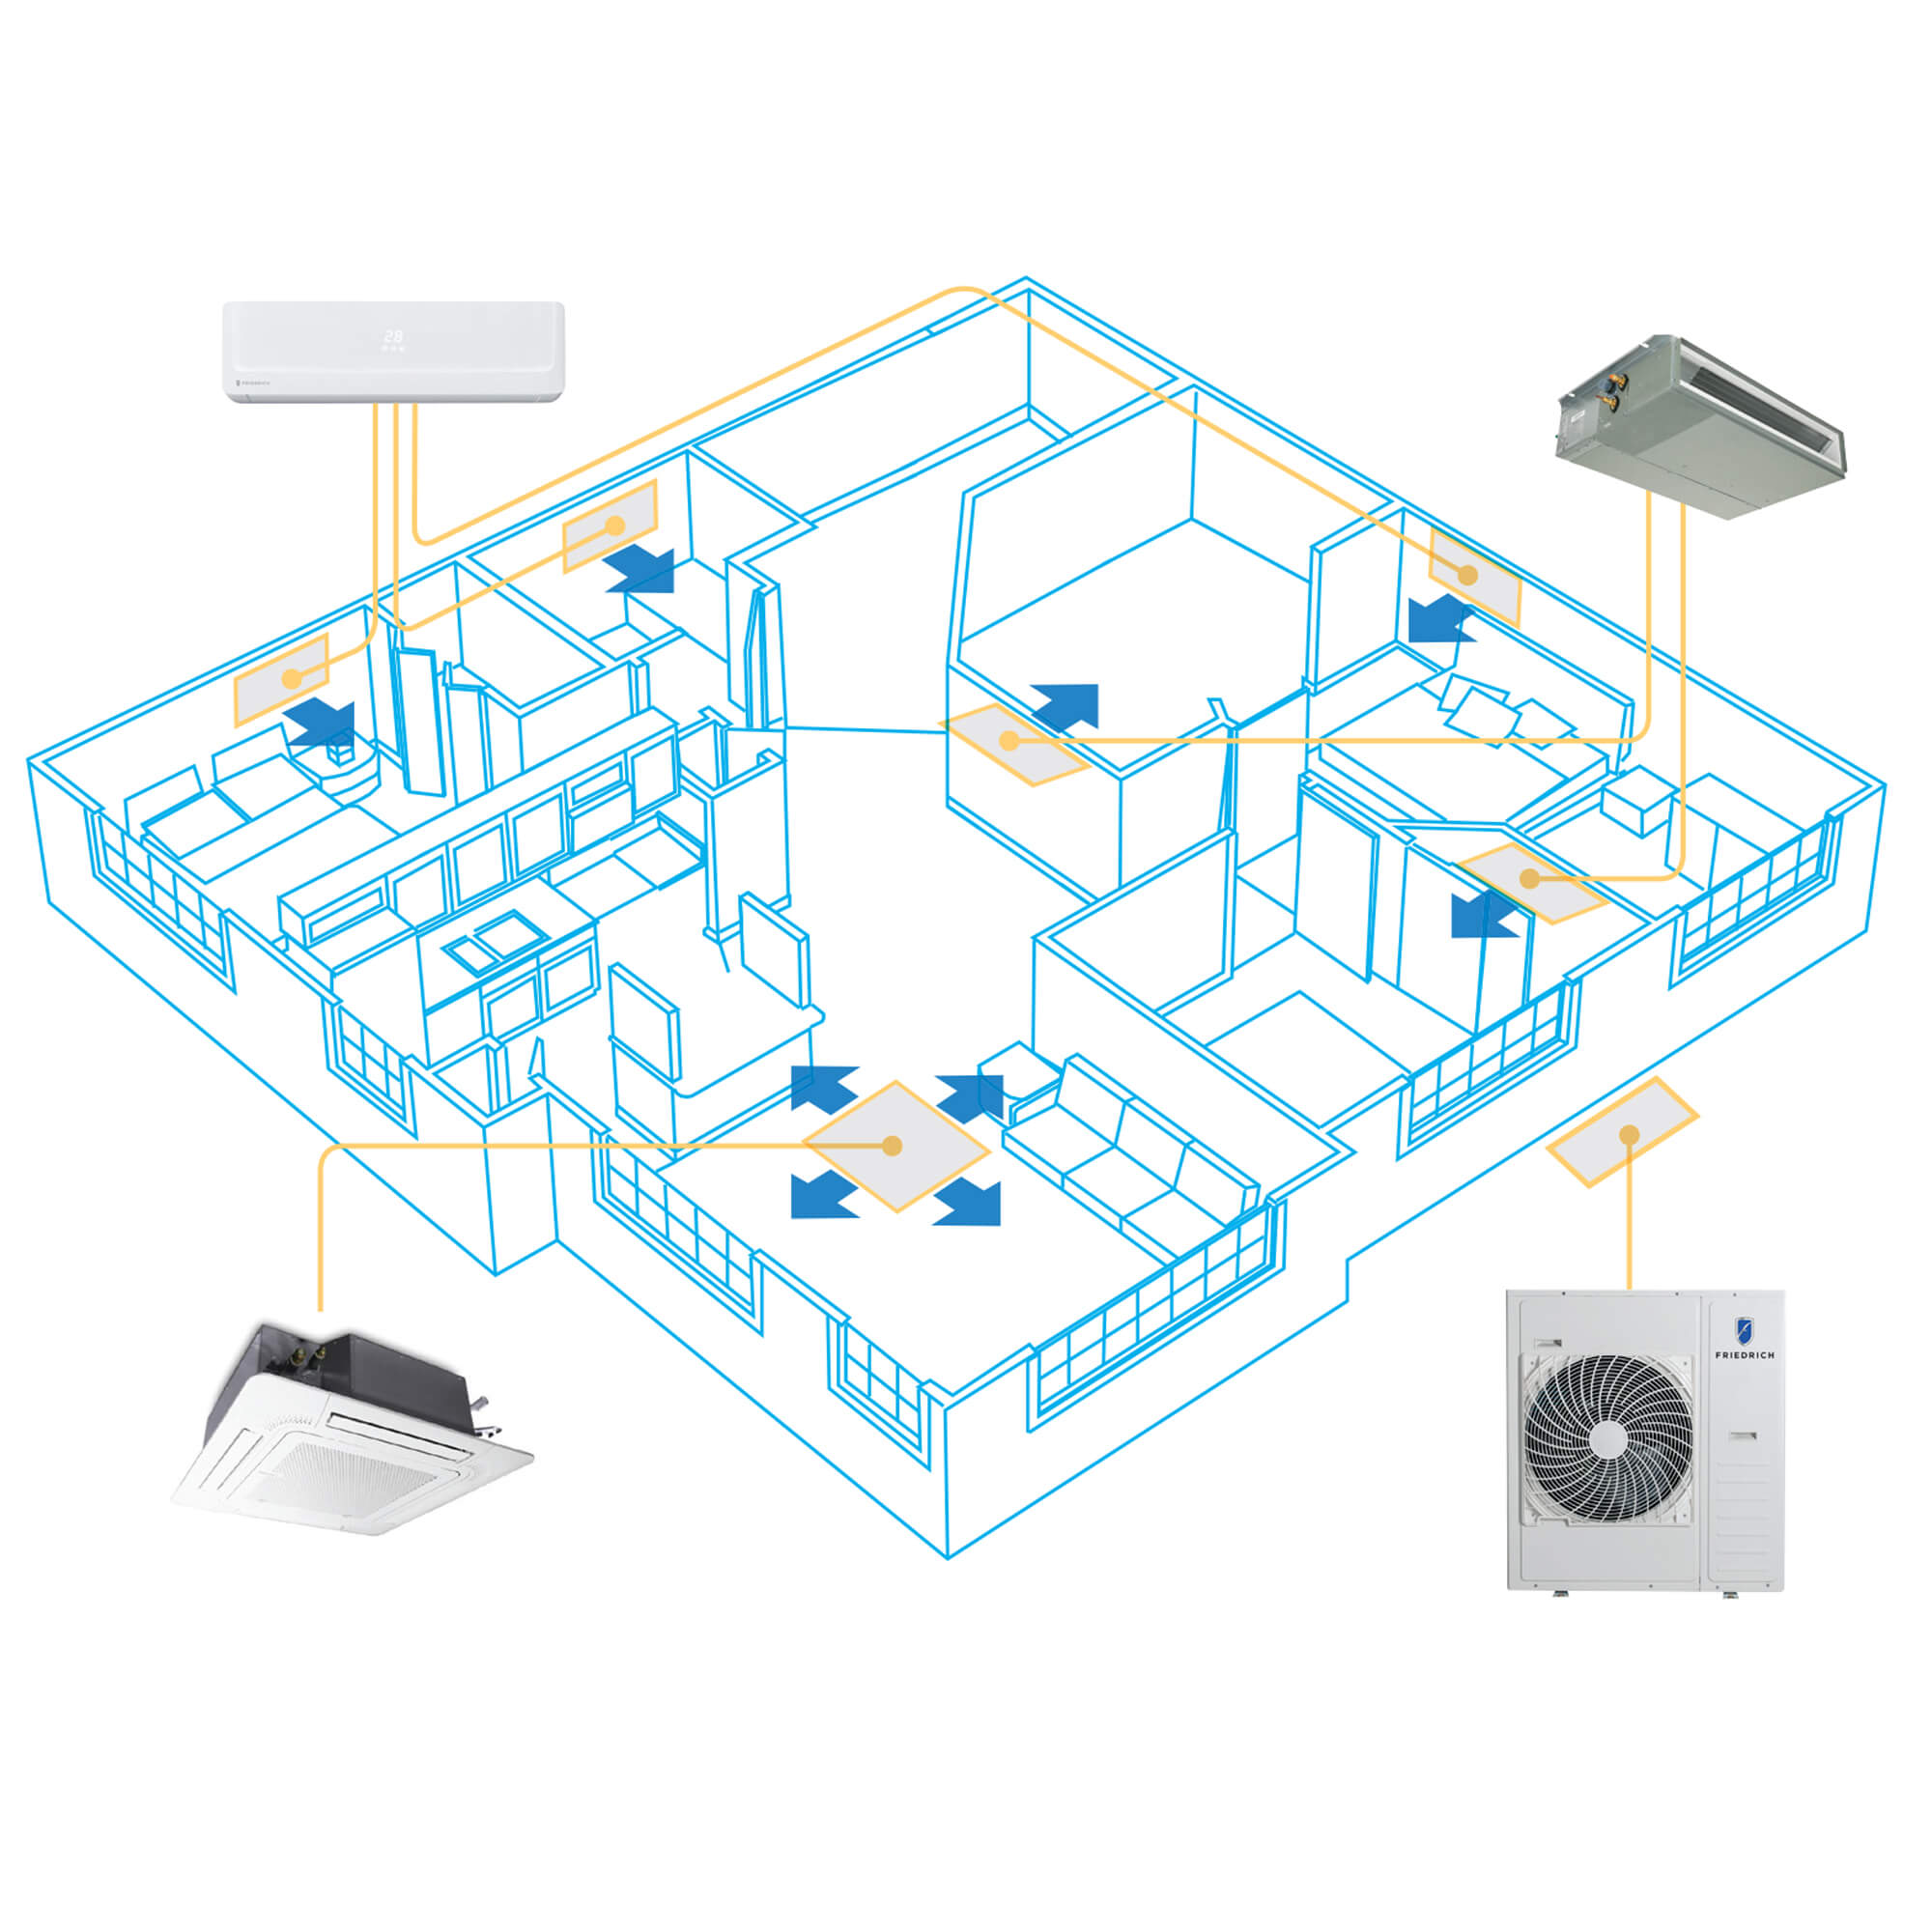 Residental Ductless Air Conditioners Systems | Friedrich on drilling diagram, electricians diagram, solar panels diagram, panel wiring icon, rslogix diagram, troubleshooting diagram, assembly diagram, installation diagram, plc diagram, instrumentation diagram, telecommunications diagram, grounding diagram,